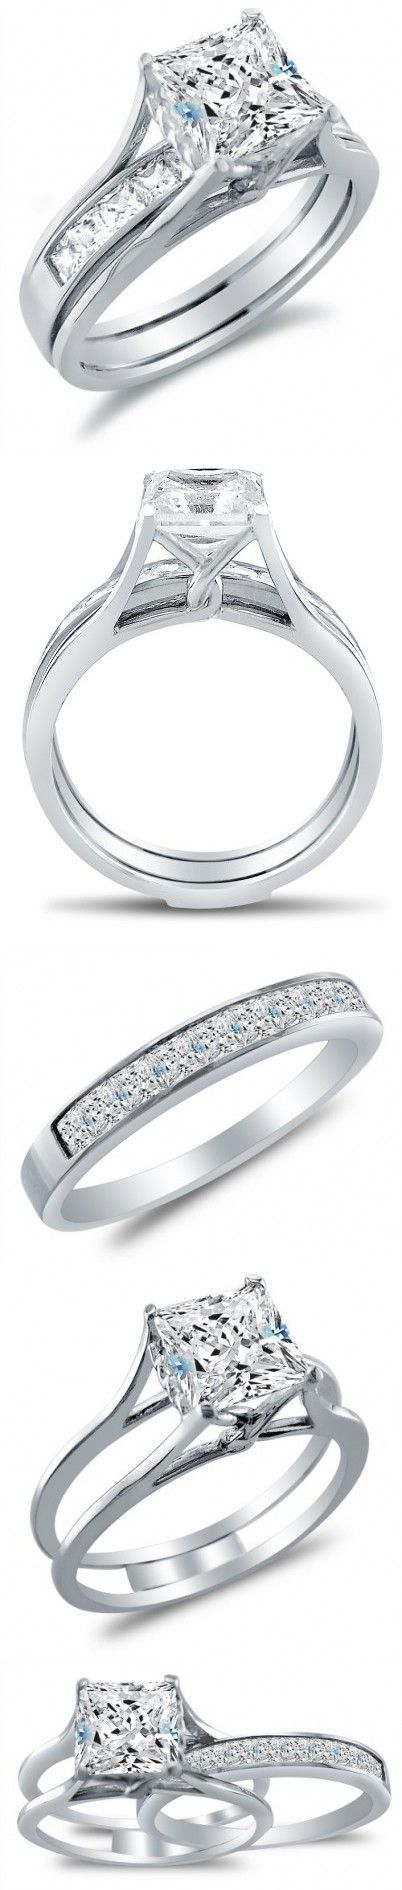 Size 9 - Solid 14k White Gold Bridal Set Princess Cut Solitaire Engagement Ring with Matching Channel Set Wedding Band Highest Quality CZ Cubic Zirconia 2.0ct.